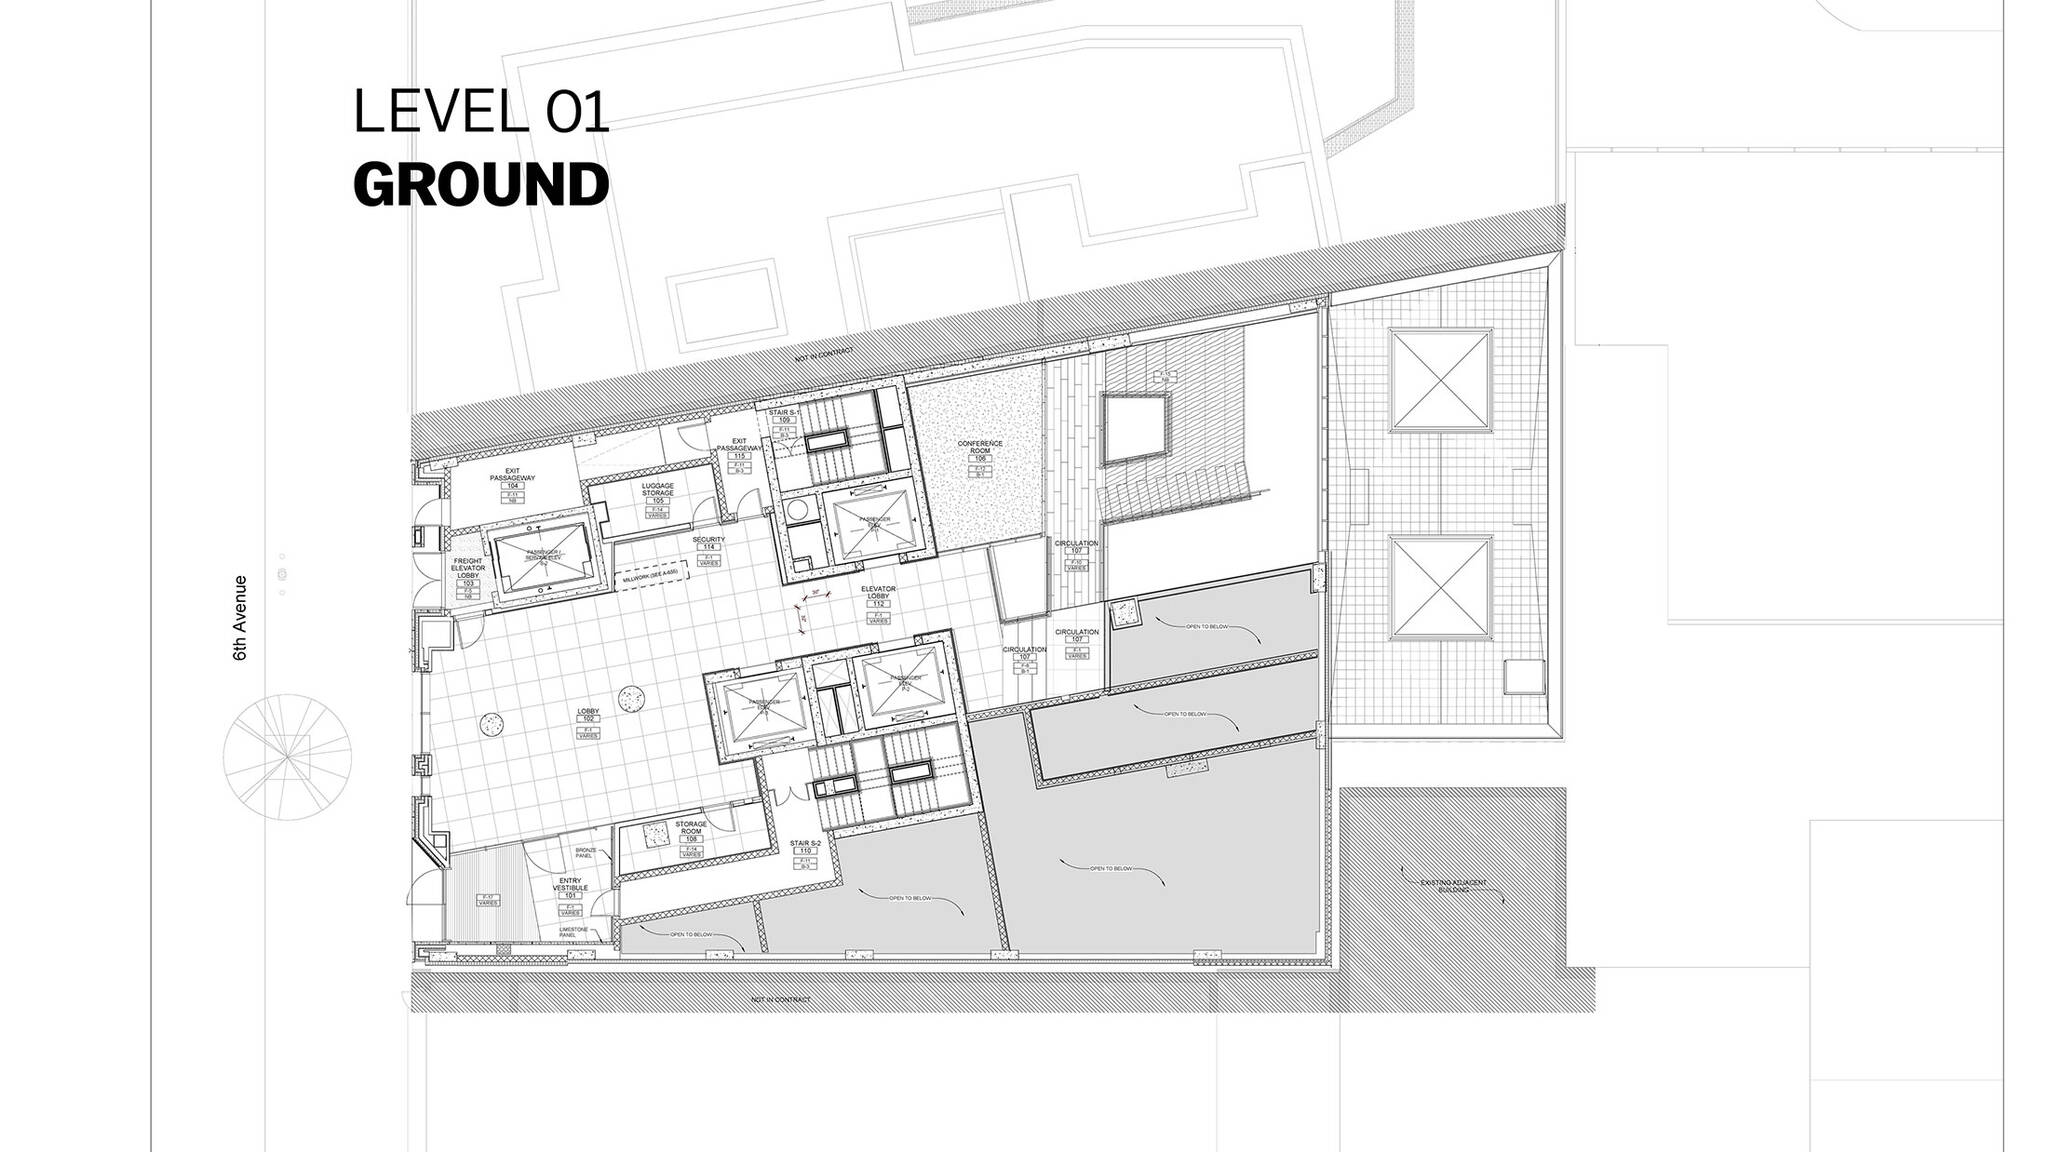 Ground floor plan of the Modular AC Hotel project located at 842 Sixth Avenue in NoMad, New York City designed by the architecture studio Danny Forster & Architecture